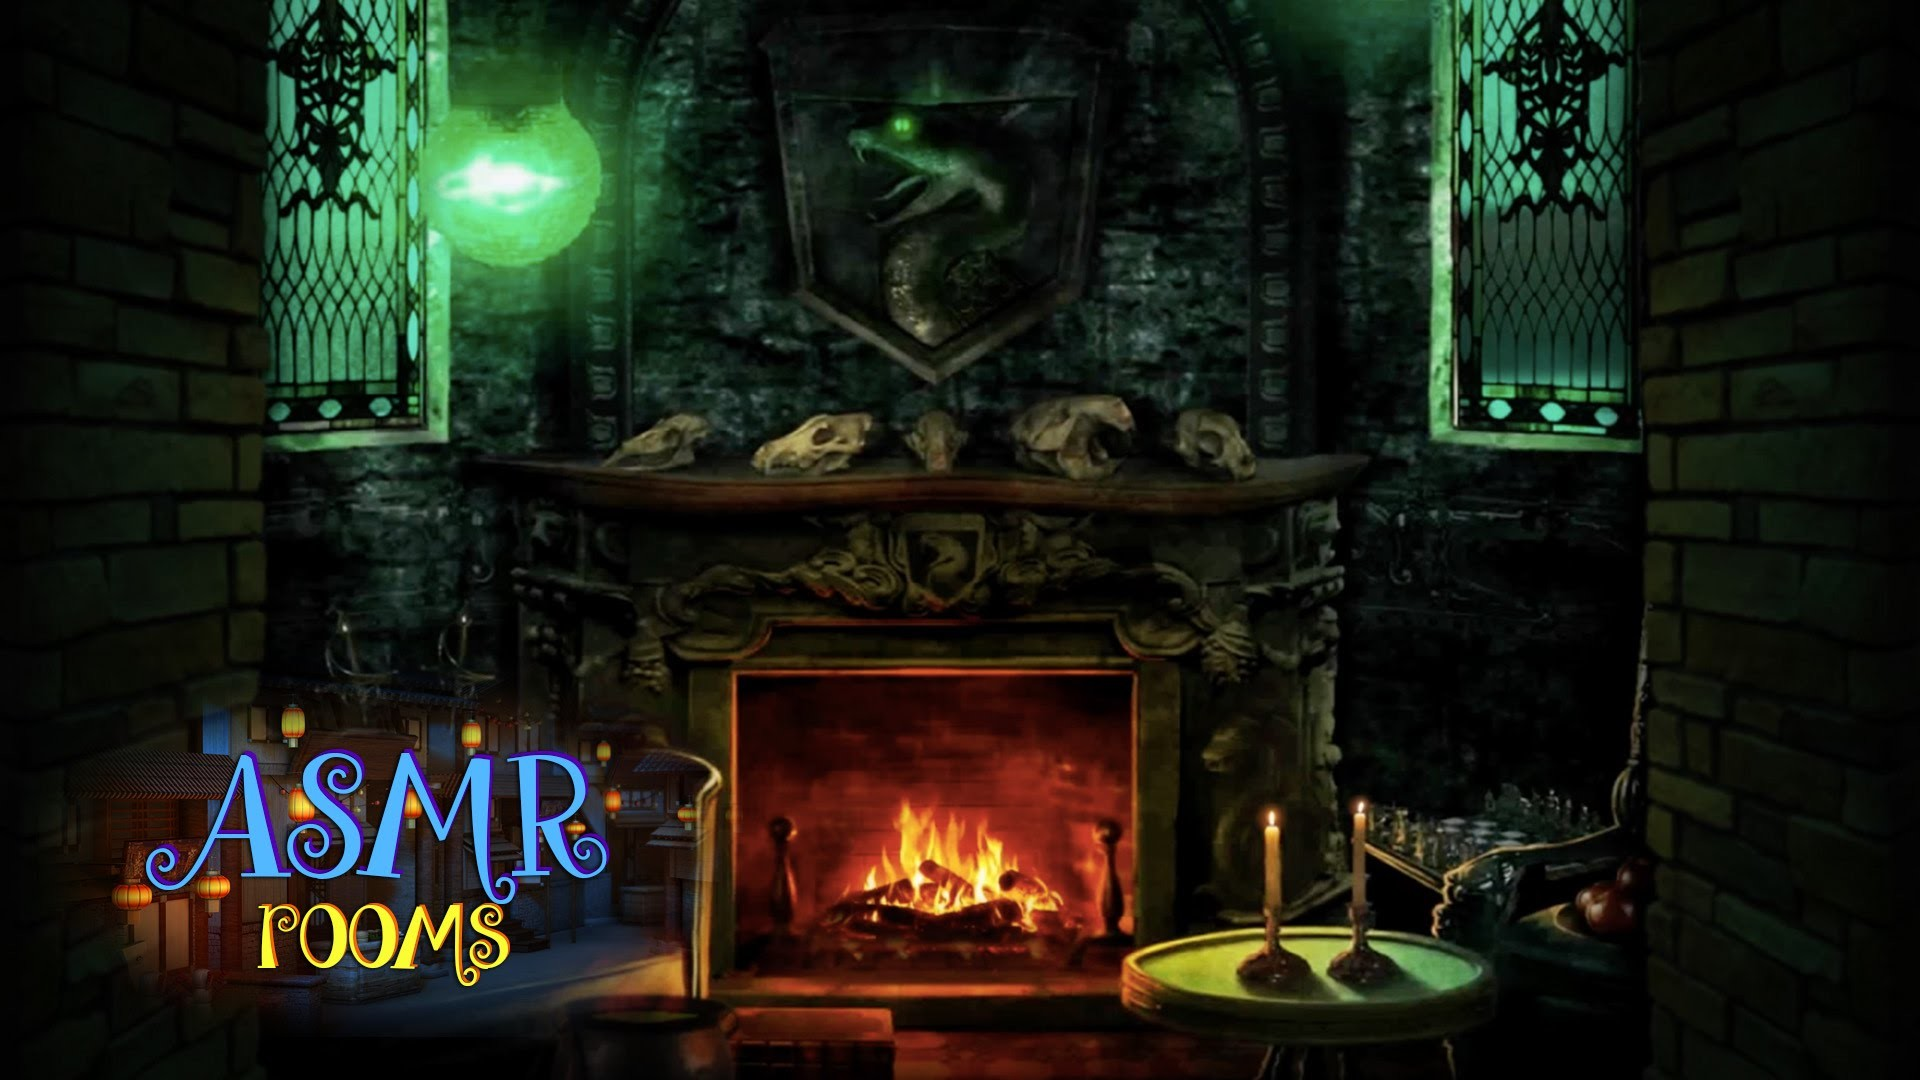 1920x1080 Harry Potter ASMR - Slytherin Common Room - POV HD ambient sound white  noise - Cinemagraphs - YouTube